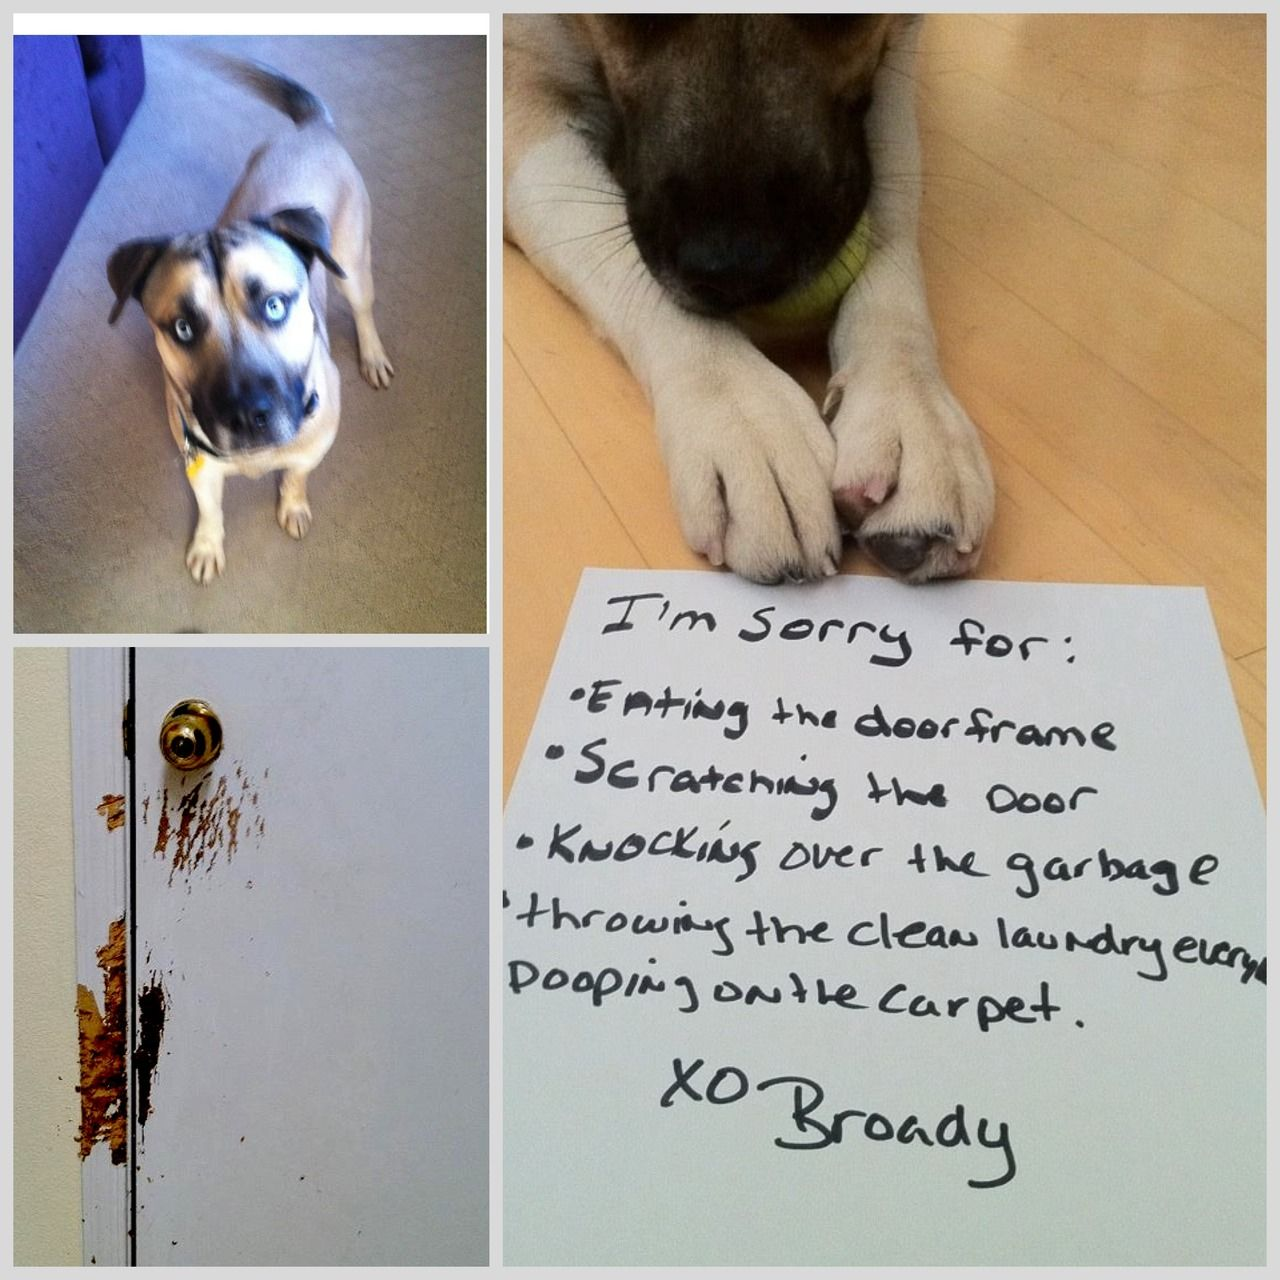 While In Timeout Broady Wrote The Following Apology Letter: Im Sorry For:  Eating The Door Frame Scratching The Door Knocking Over The Garbage  Throwing The ...